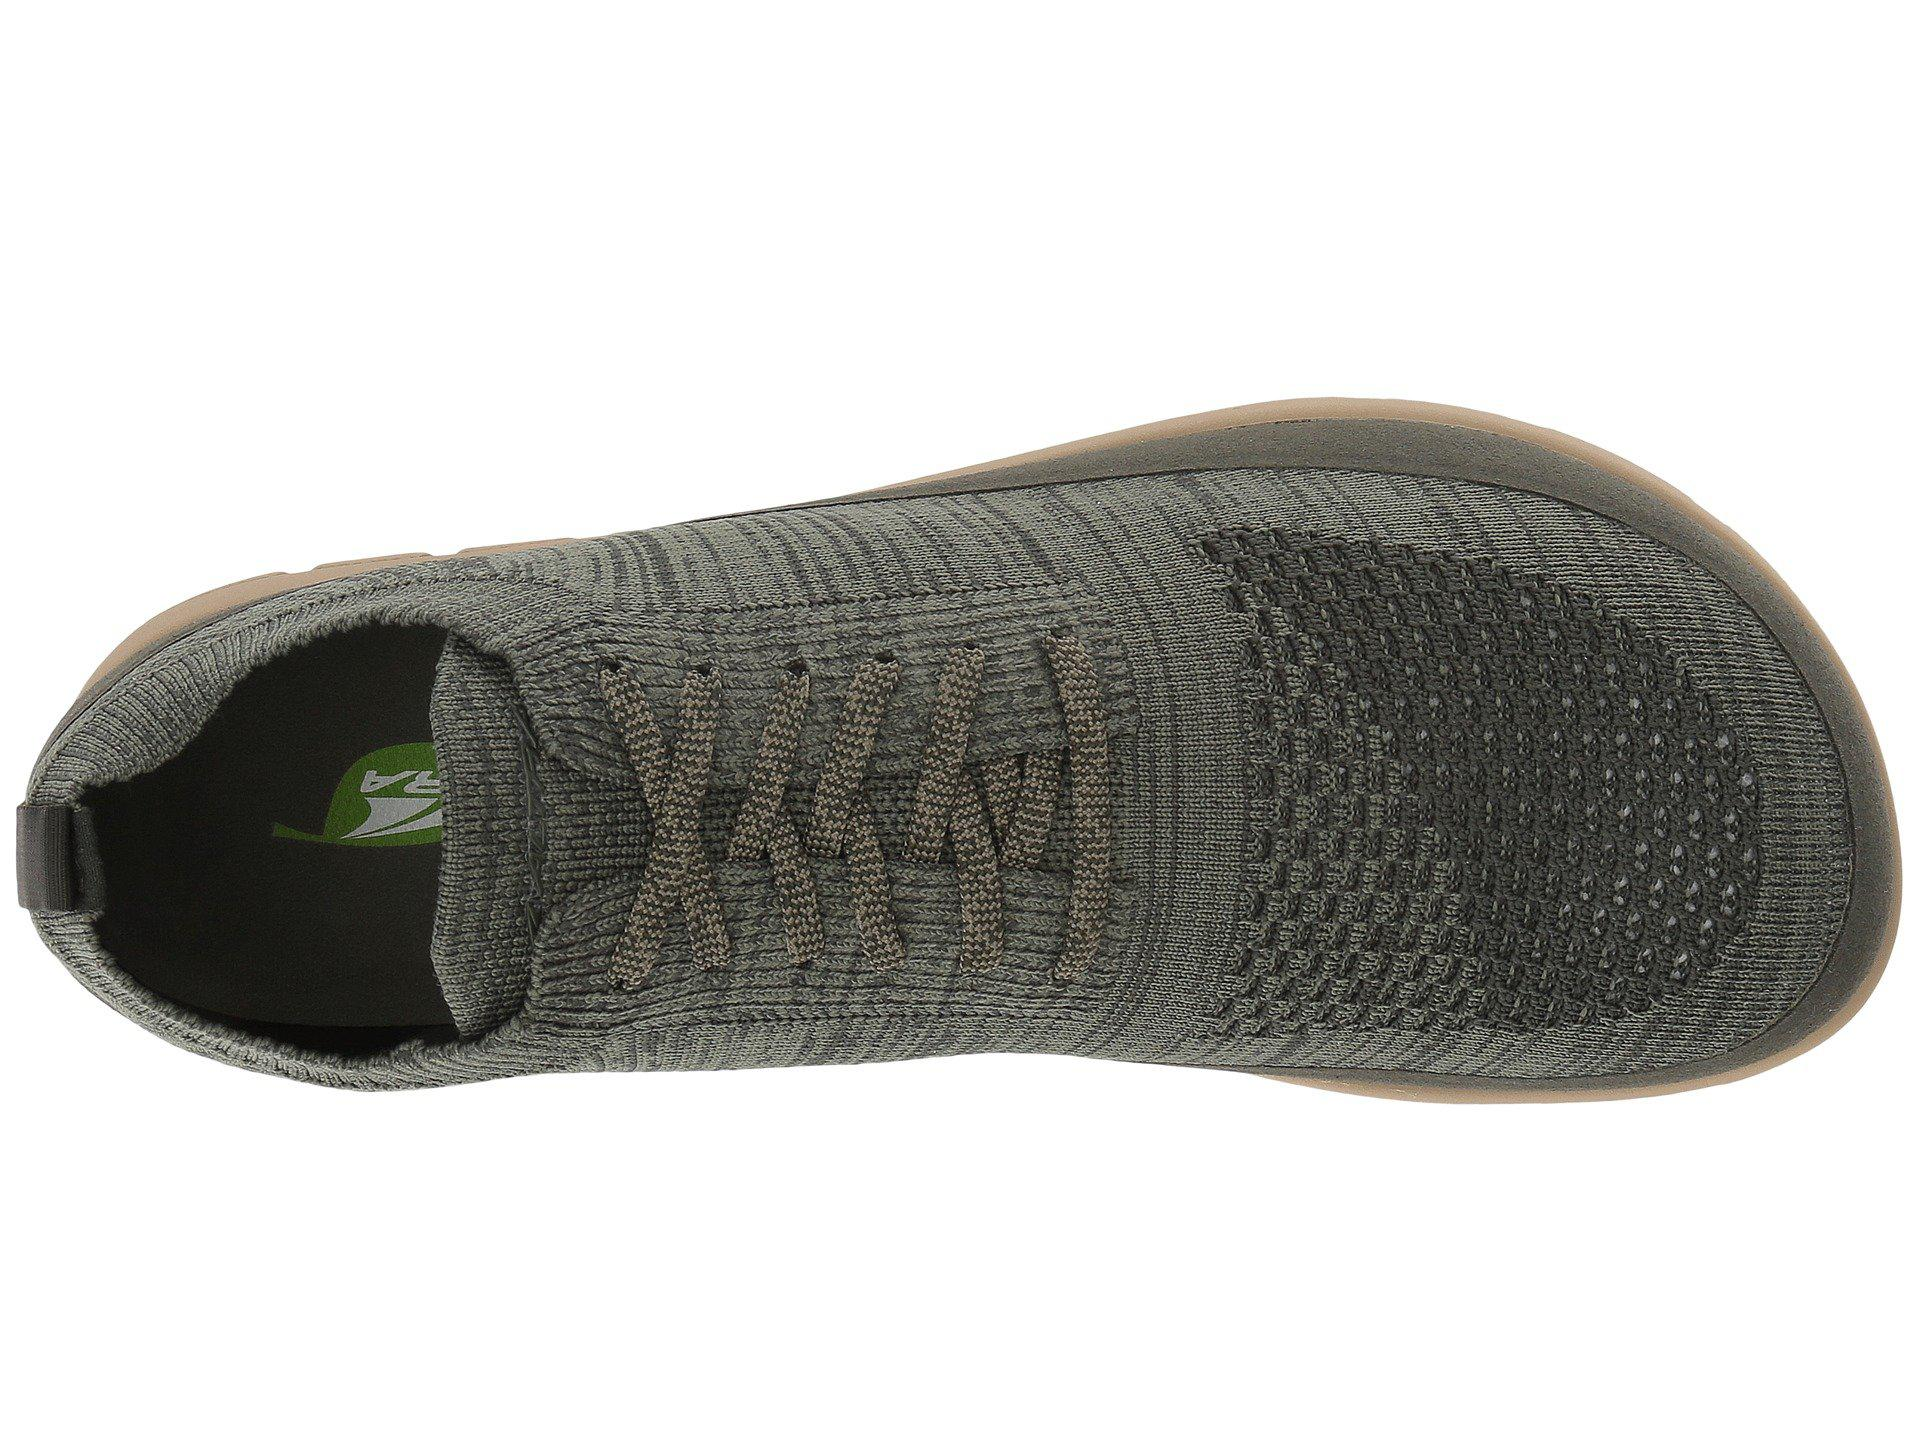 later los angeles lace up in Vali (green) Running Shoes